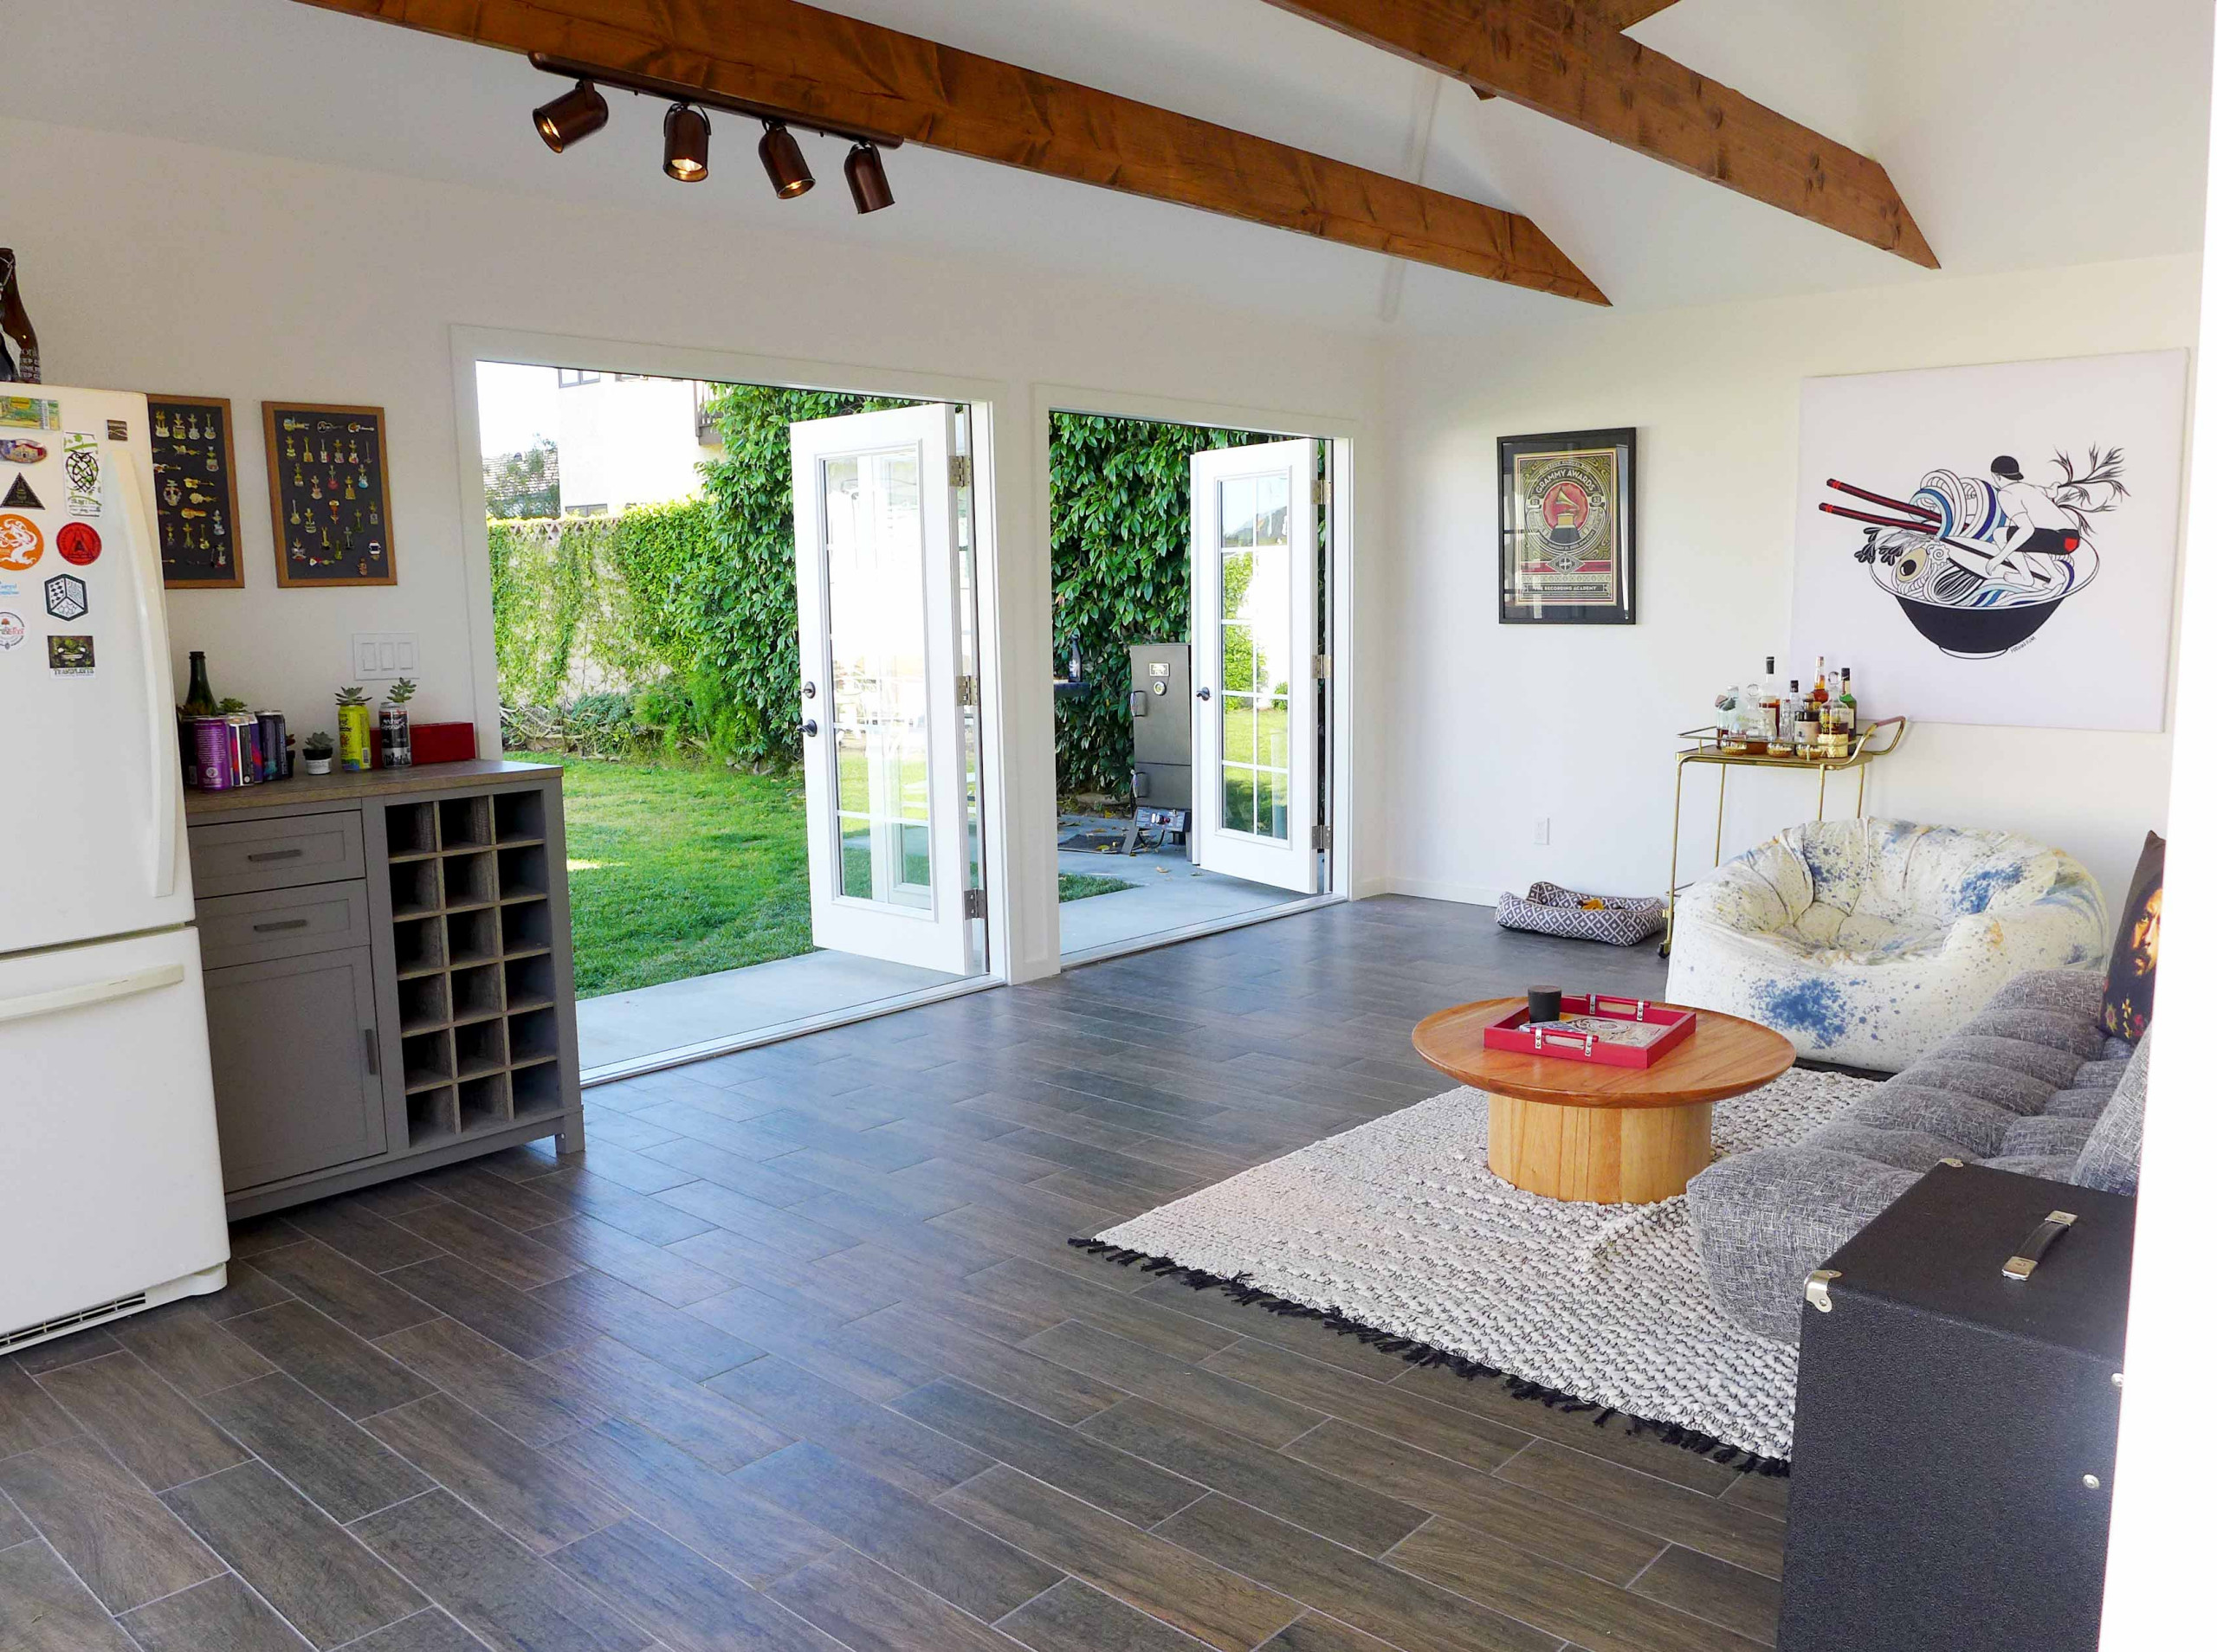 75 Beautiful Small Garage Pictures Ideas February 2021 Houzz